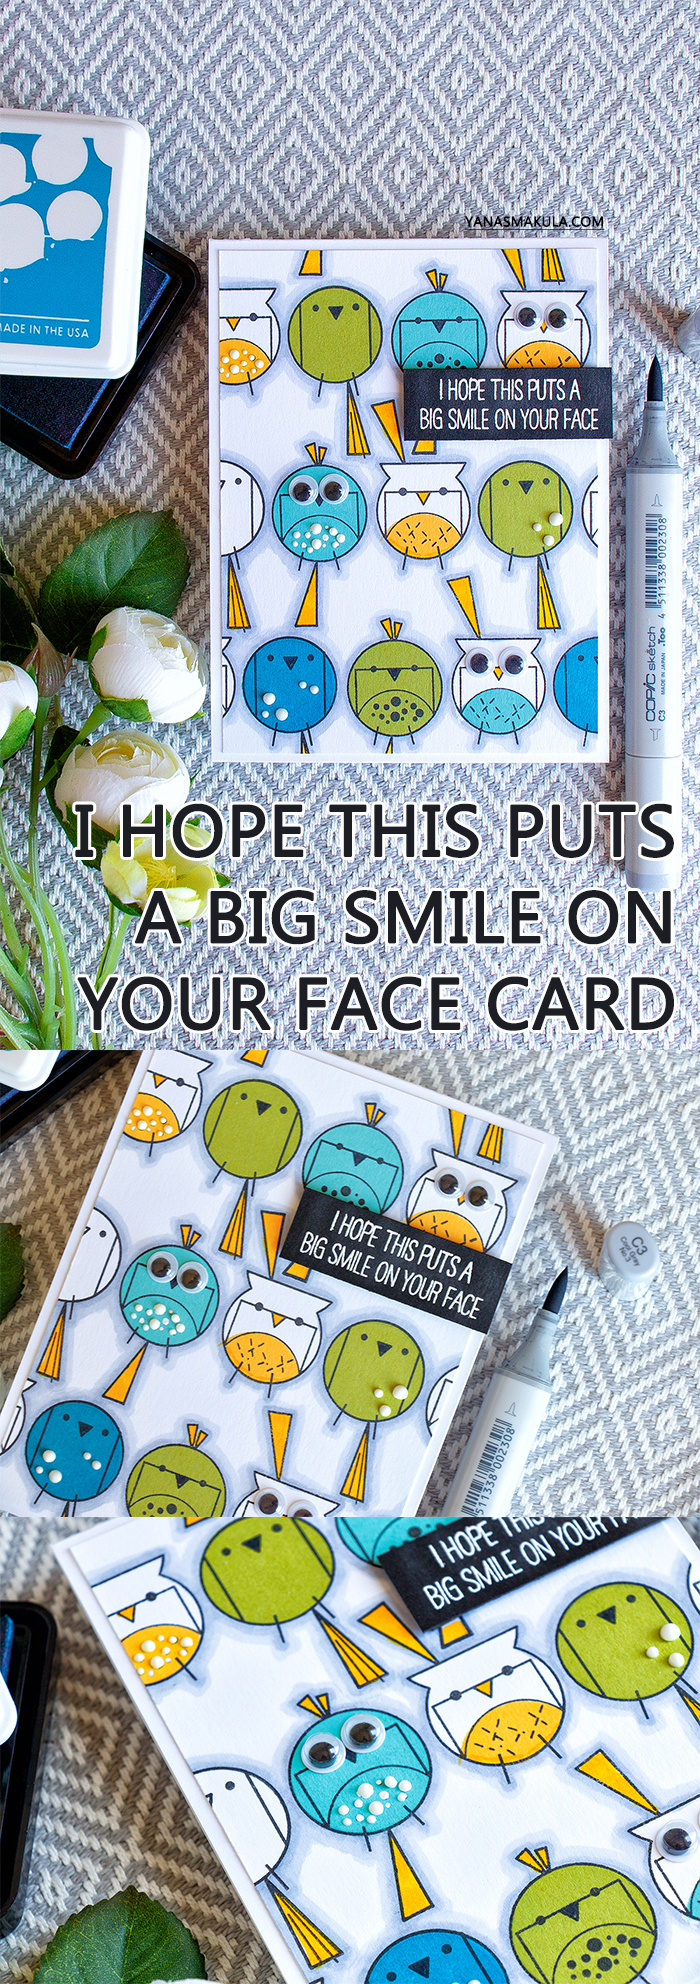 WPlus9 | I Hope This Card Puts A Smile On Your Face using Happy Birds stamp set. Handmade card by Yana Smakula